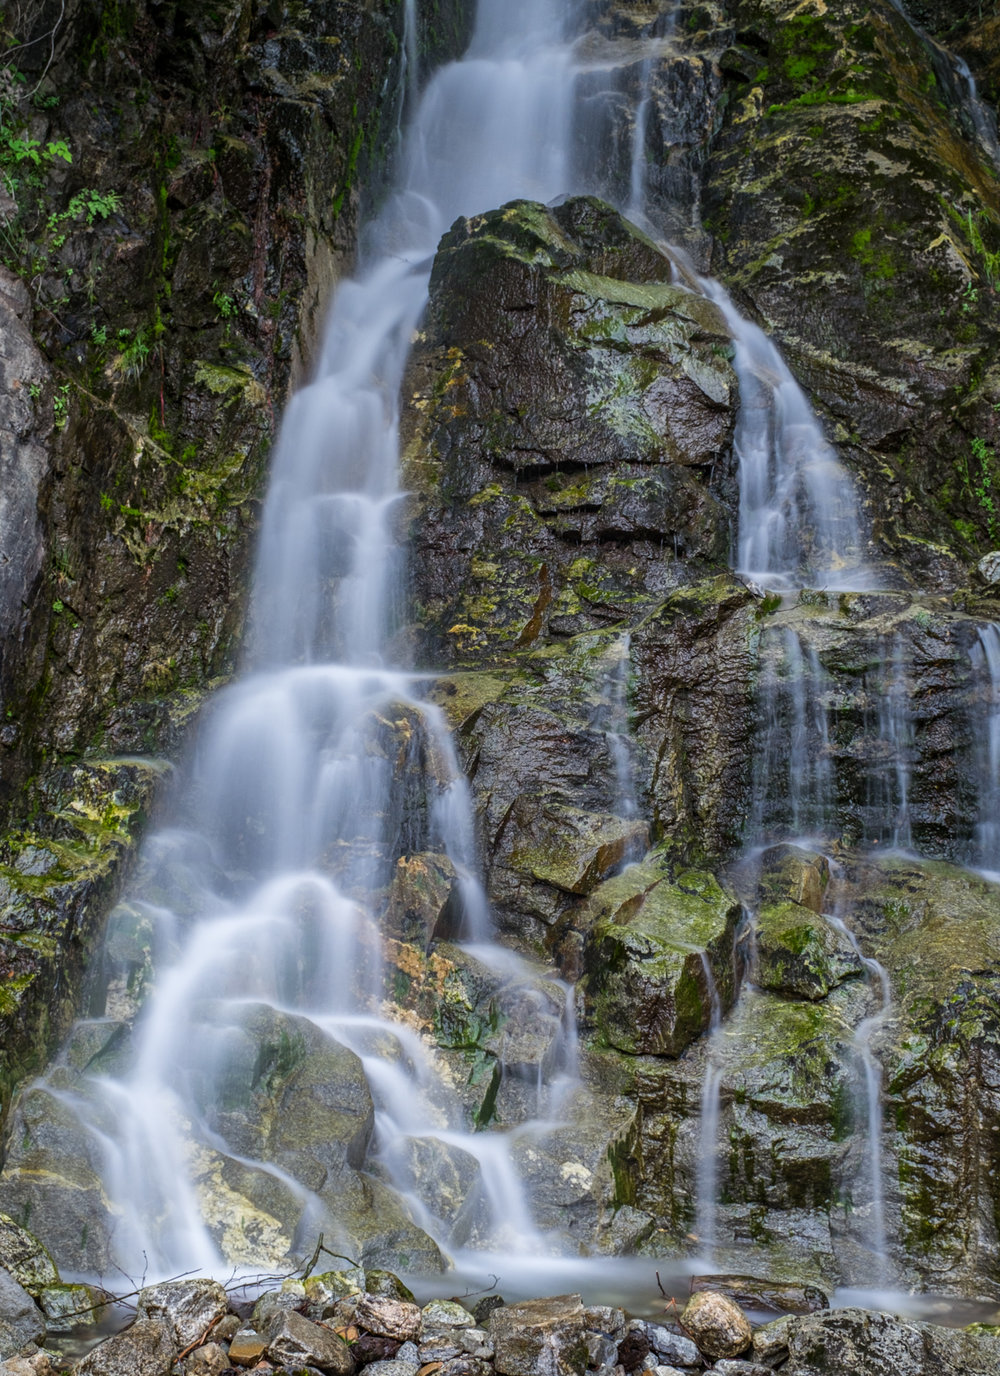 Just one of what seems like a million waterfalls that can be found in and around North Cascades National Park.